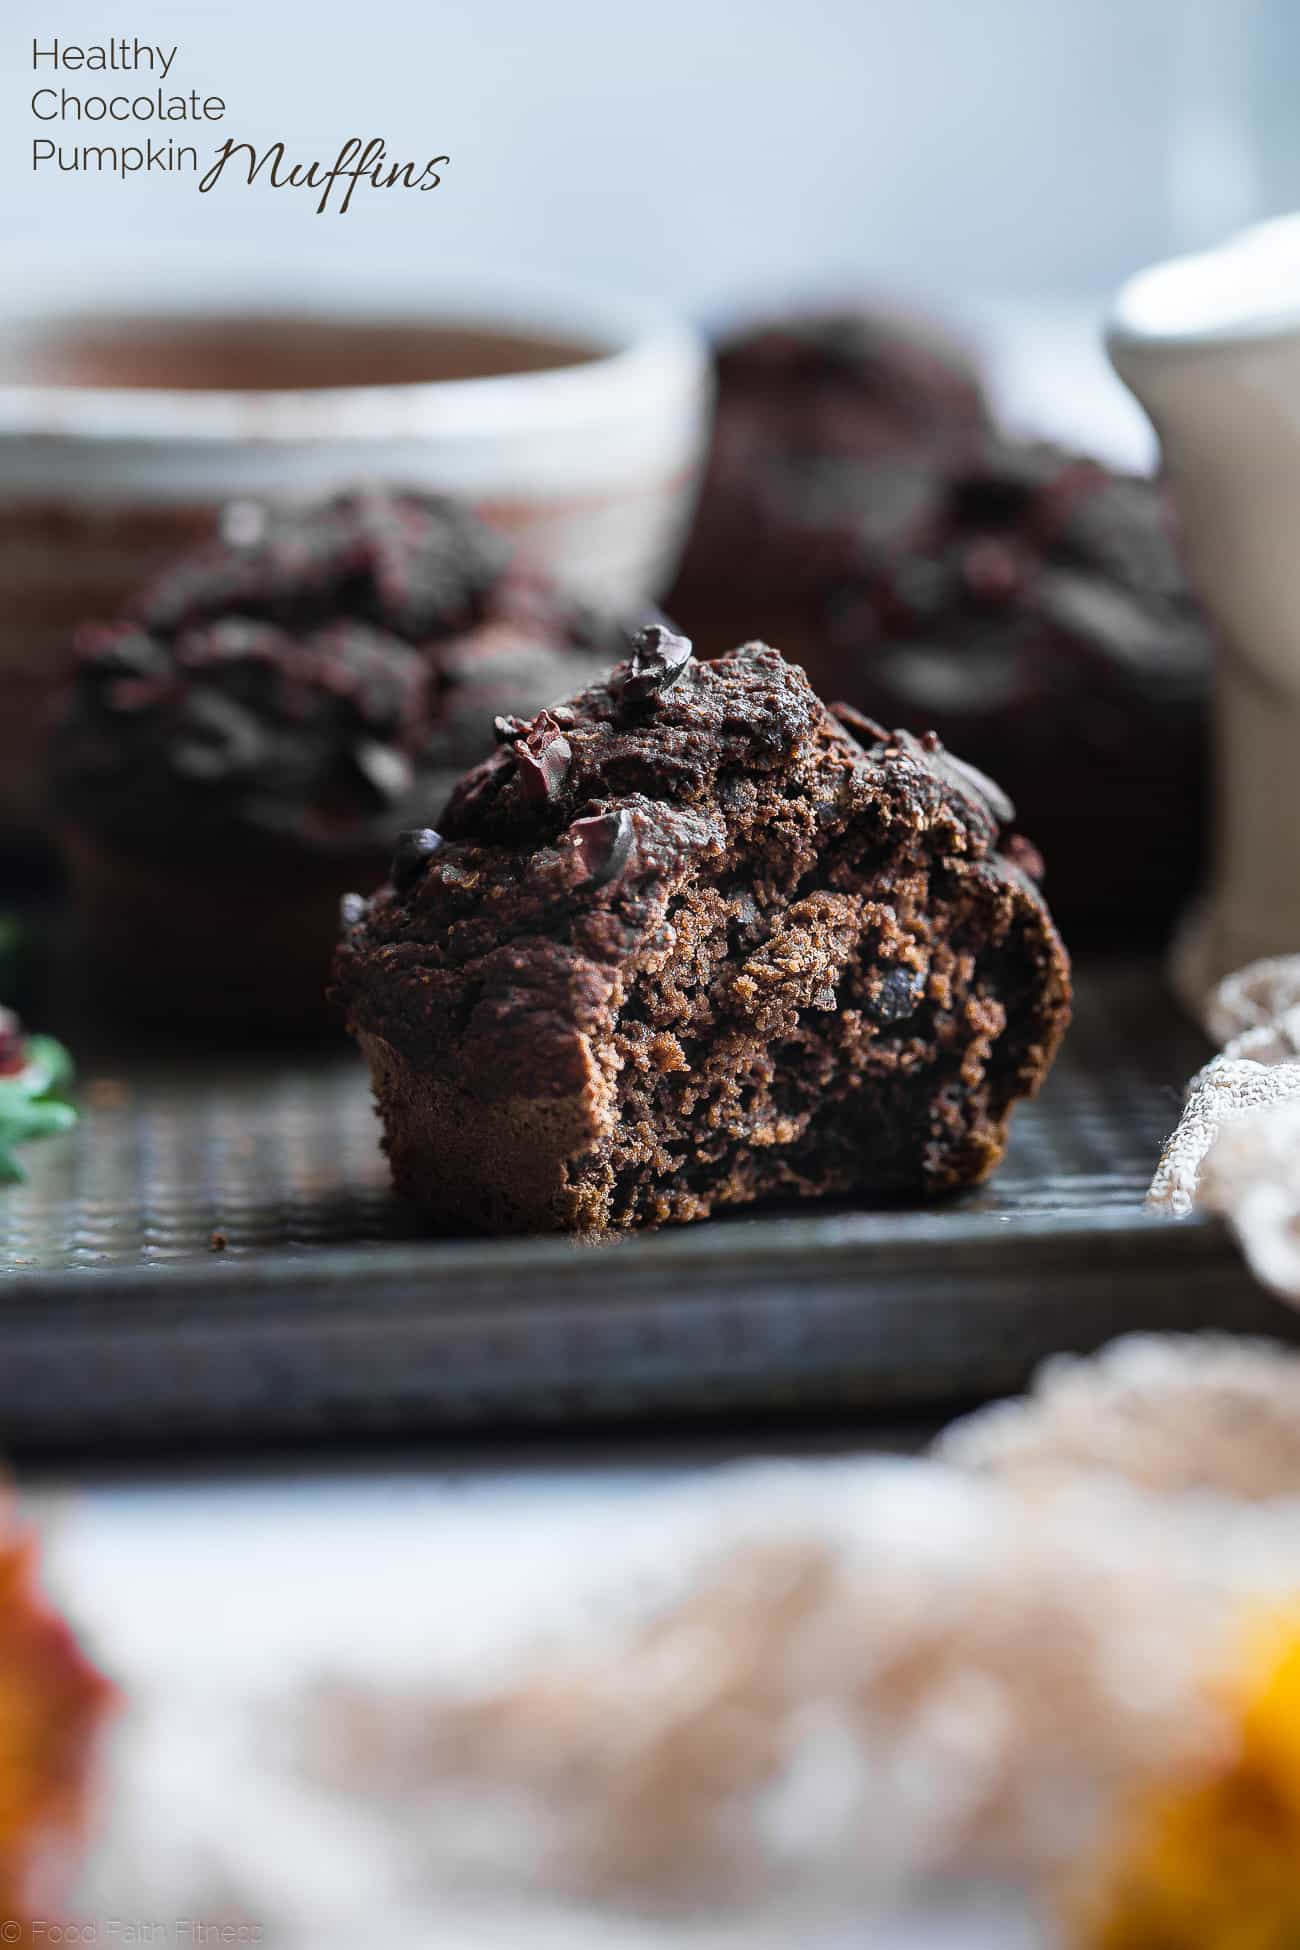 Healthy Gluten Free Chocolate Pumpkin Muffins - SO moist and chewy! Made with whole grains, dairy free, low fat, only 145 calories!  Perfect for breakfast or snack and kid friendly too! | Foodfaithfitness.com | @FoodFaitFit